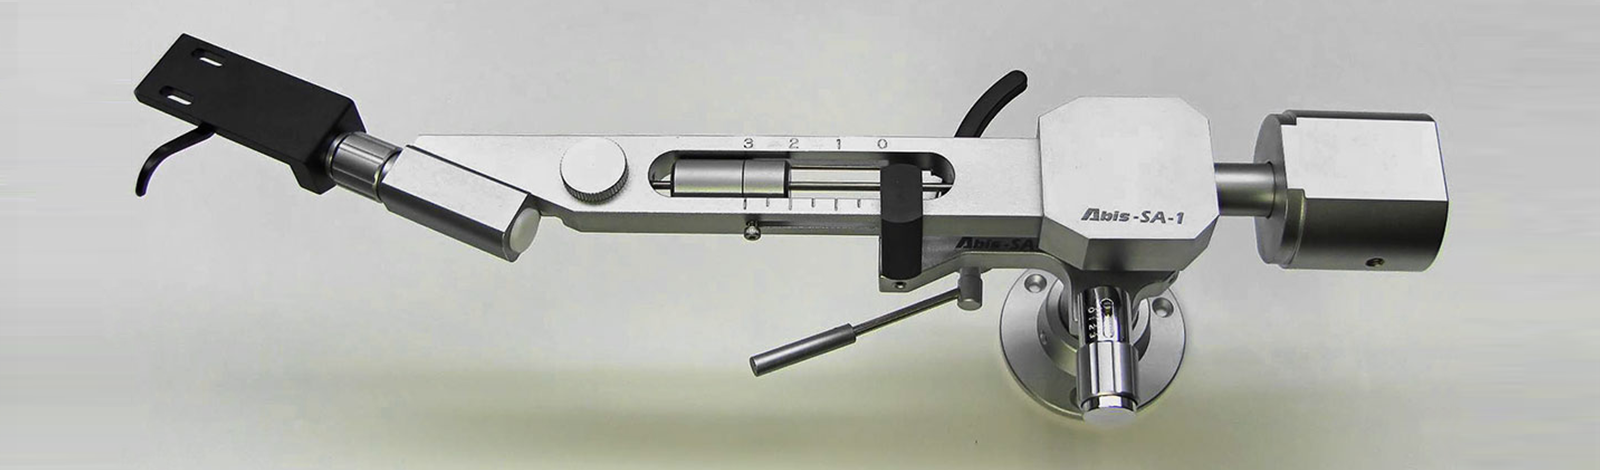 abis_tonearms